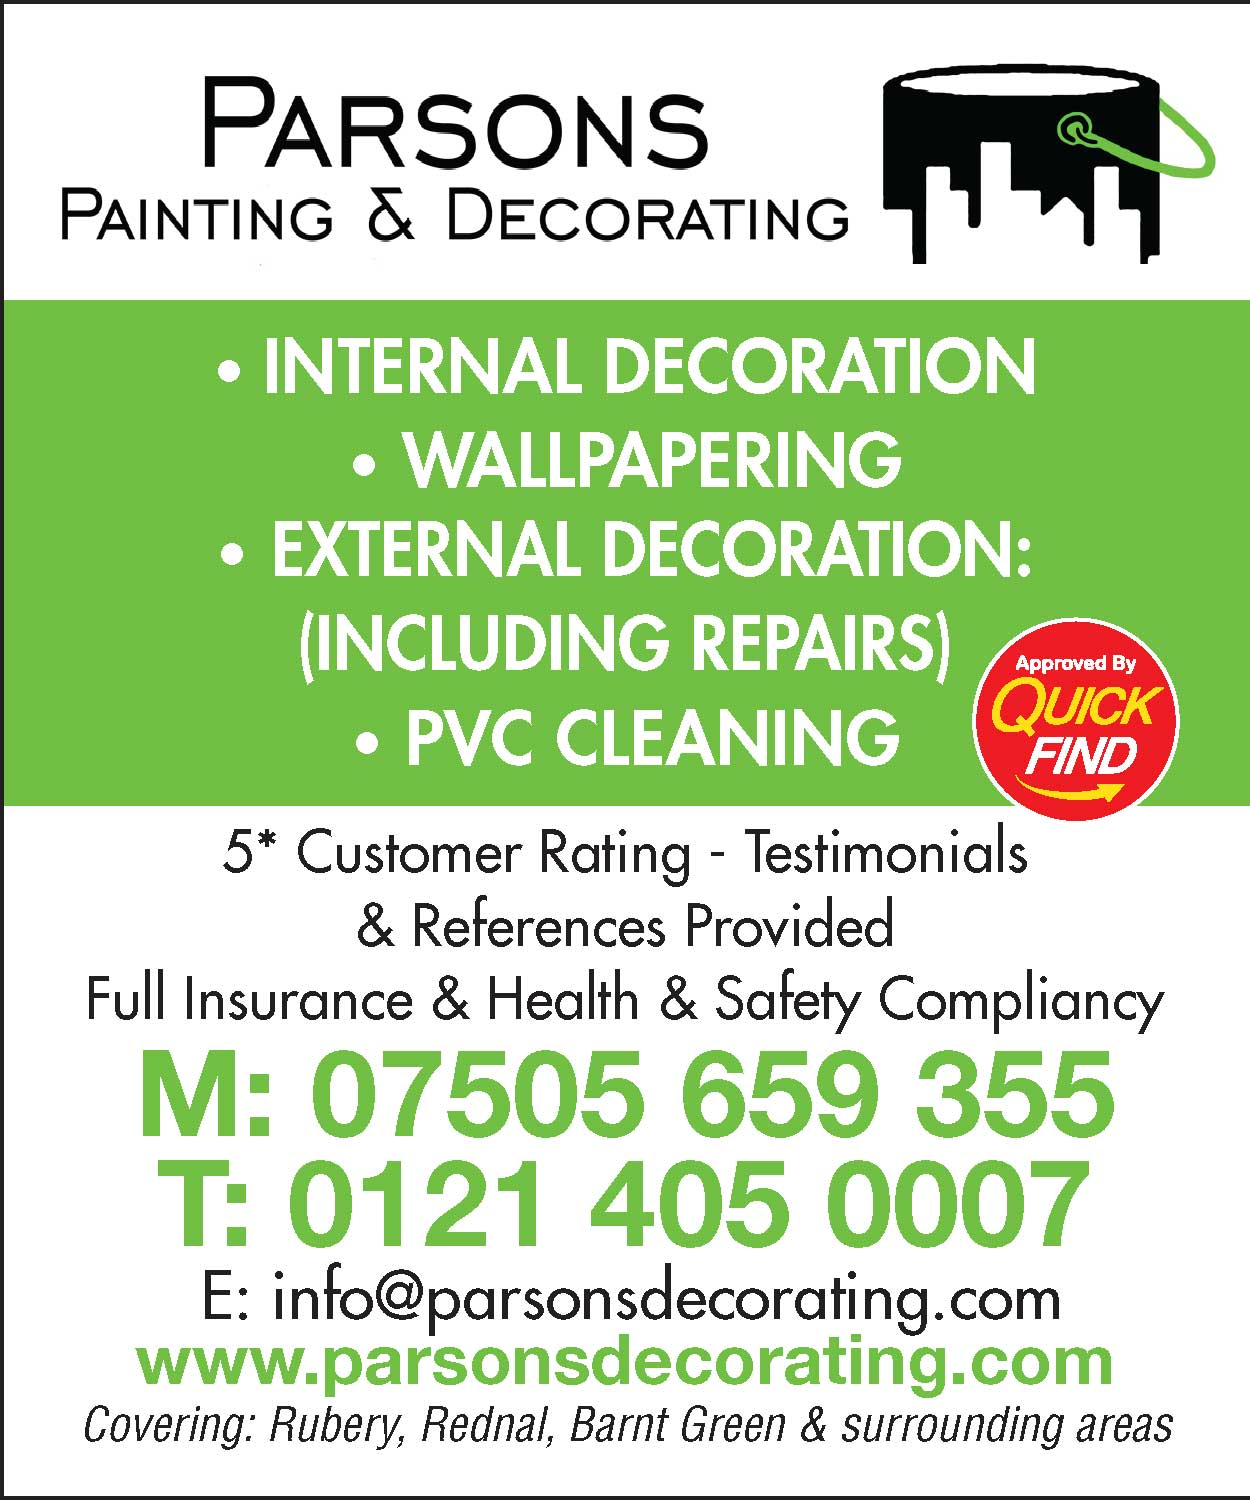 Parsons Painting and Decorating